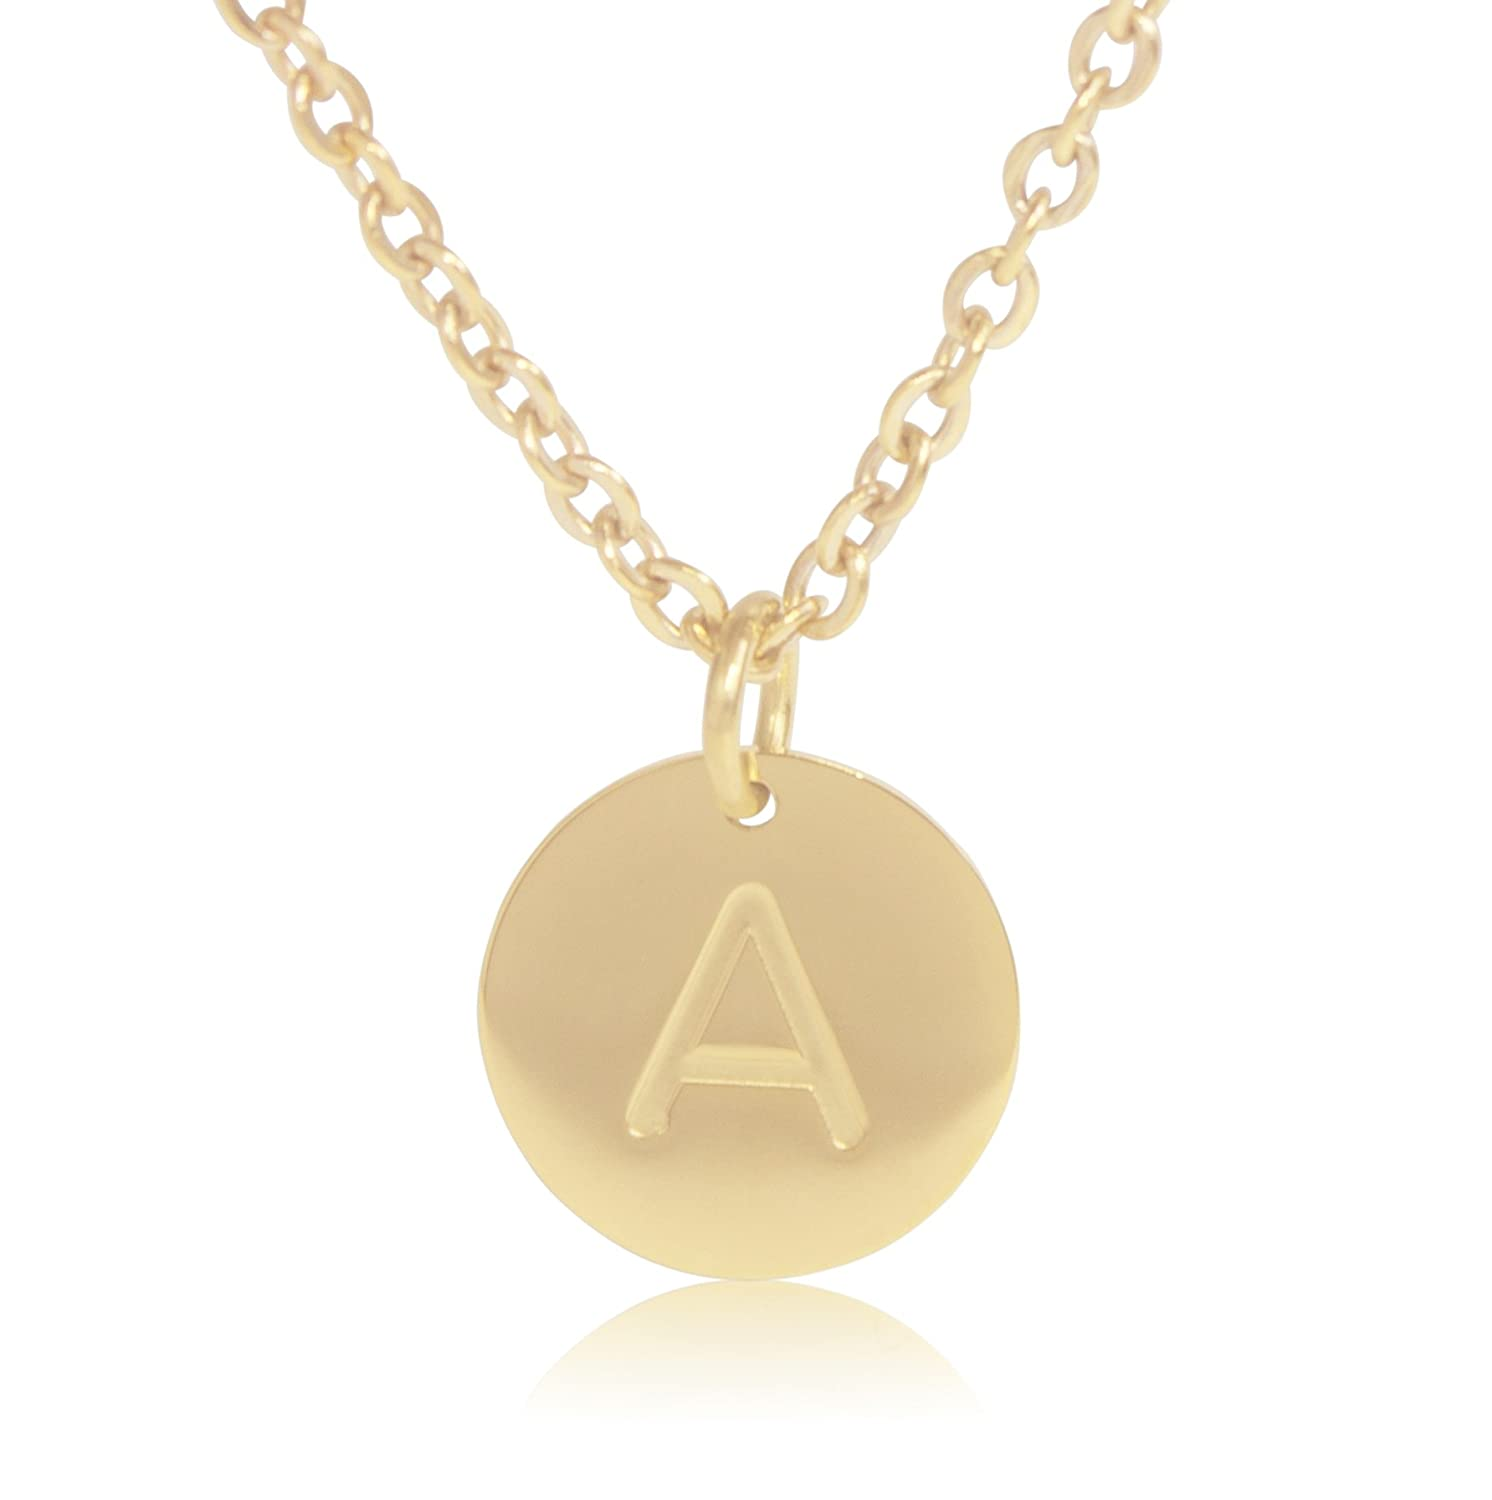 "933715d0145cd Wild Flower Jewelry 18K Gold-Plated Round Disc Engraved Initial Pendant 18""  Adjustable Necklace with Personalized Alphabet Letter"